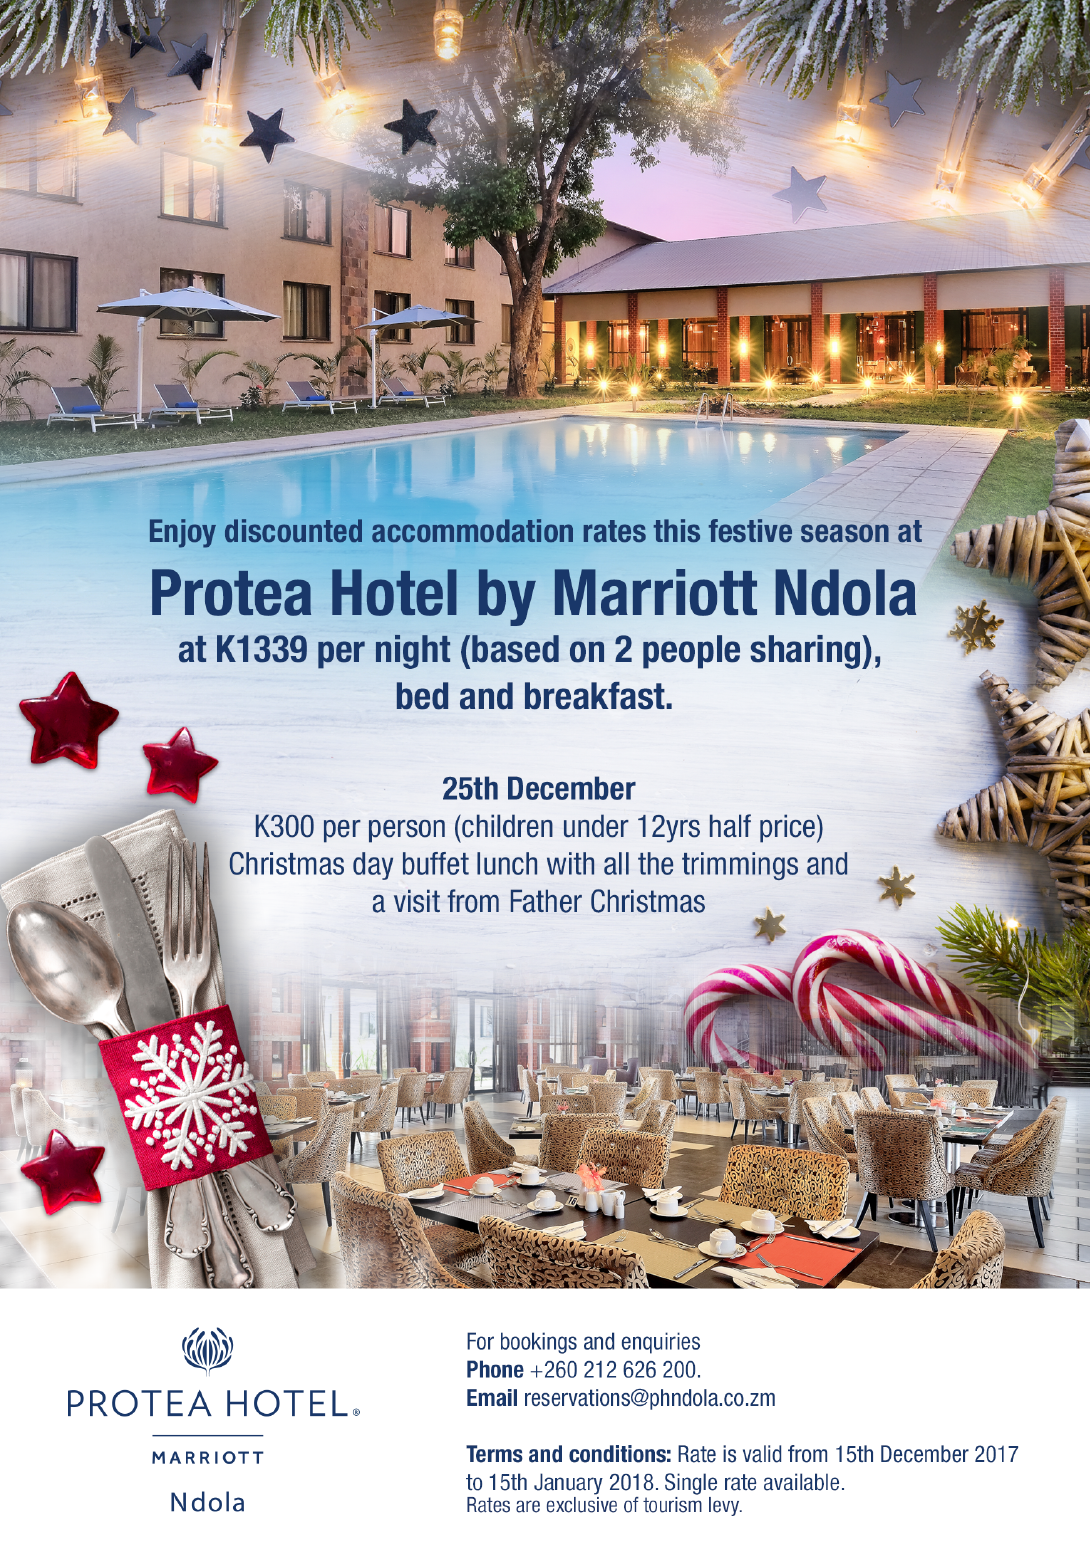 Protea hotel by marriott ndola ad dicts in for Hotel decor 2017